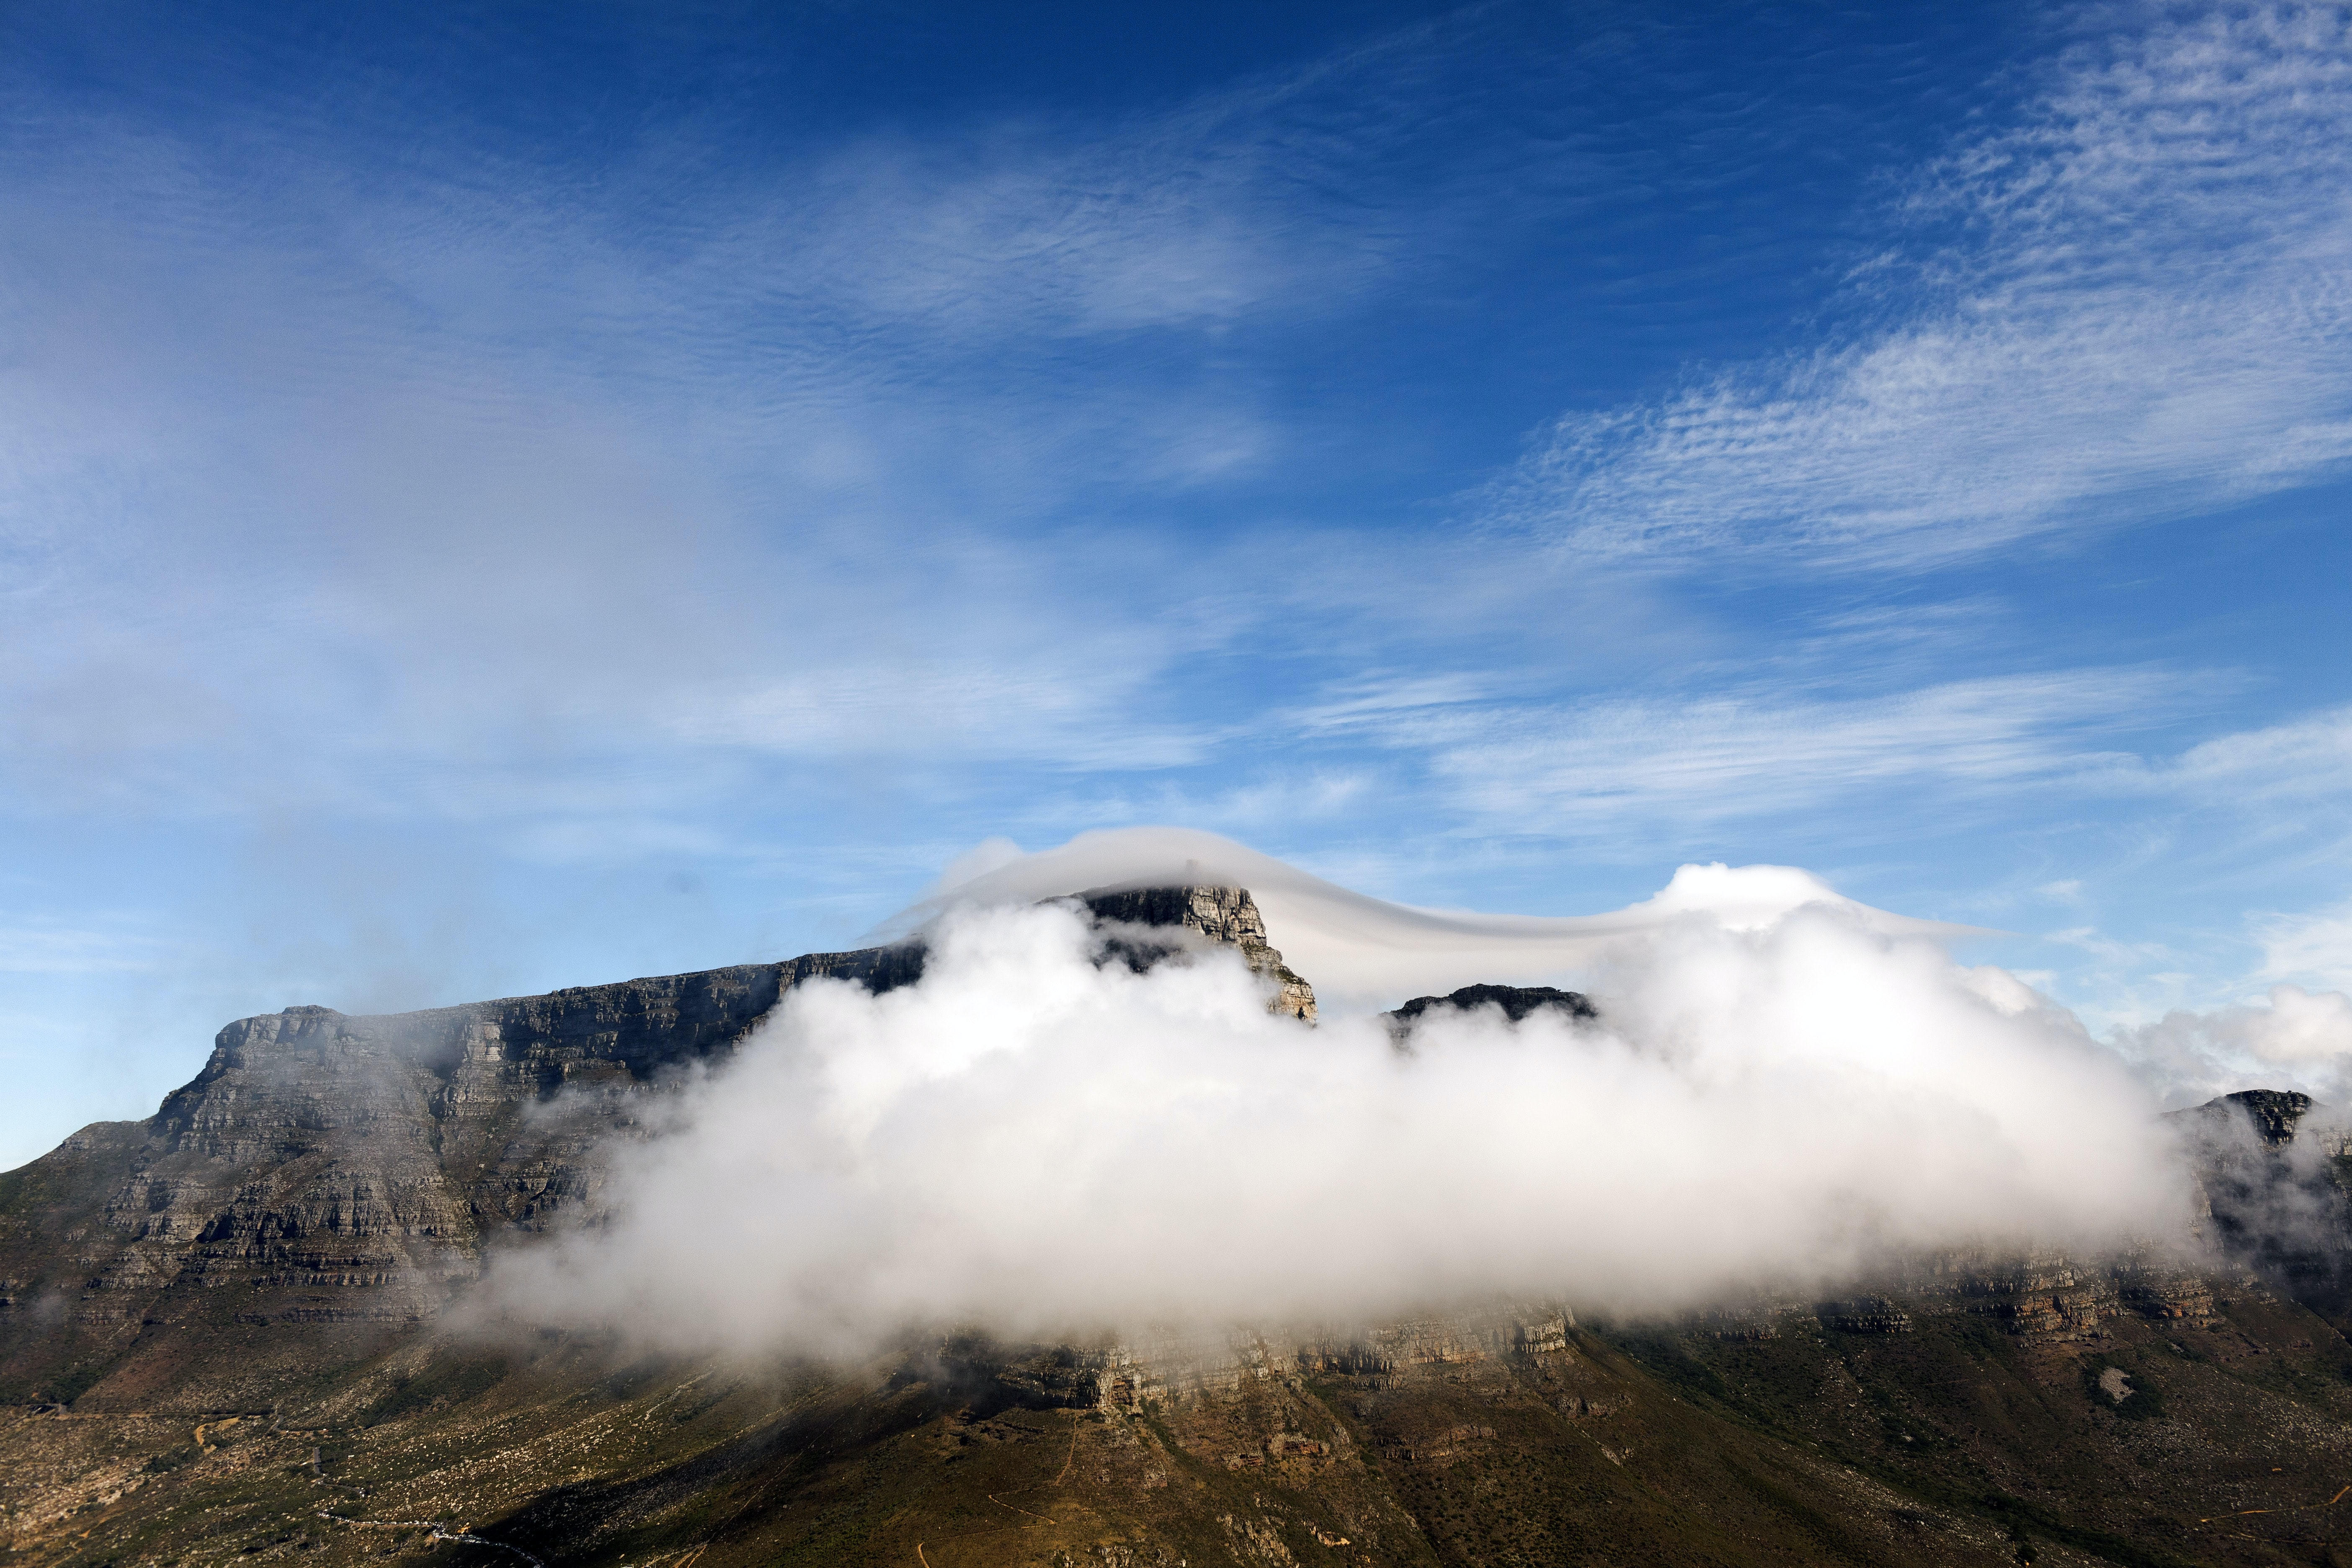 A fluffy cloud enveloping a rocky mountaintop on a bright day